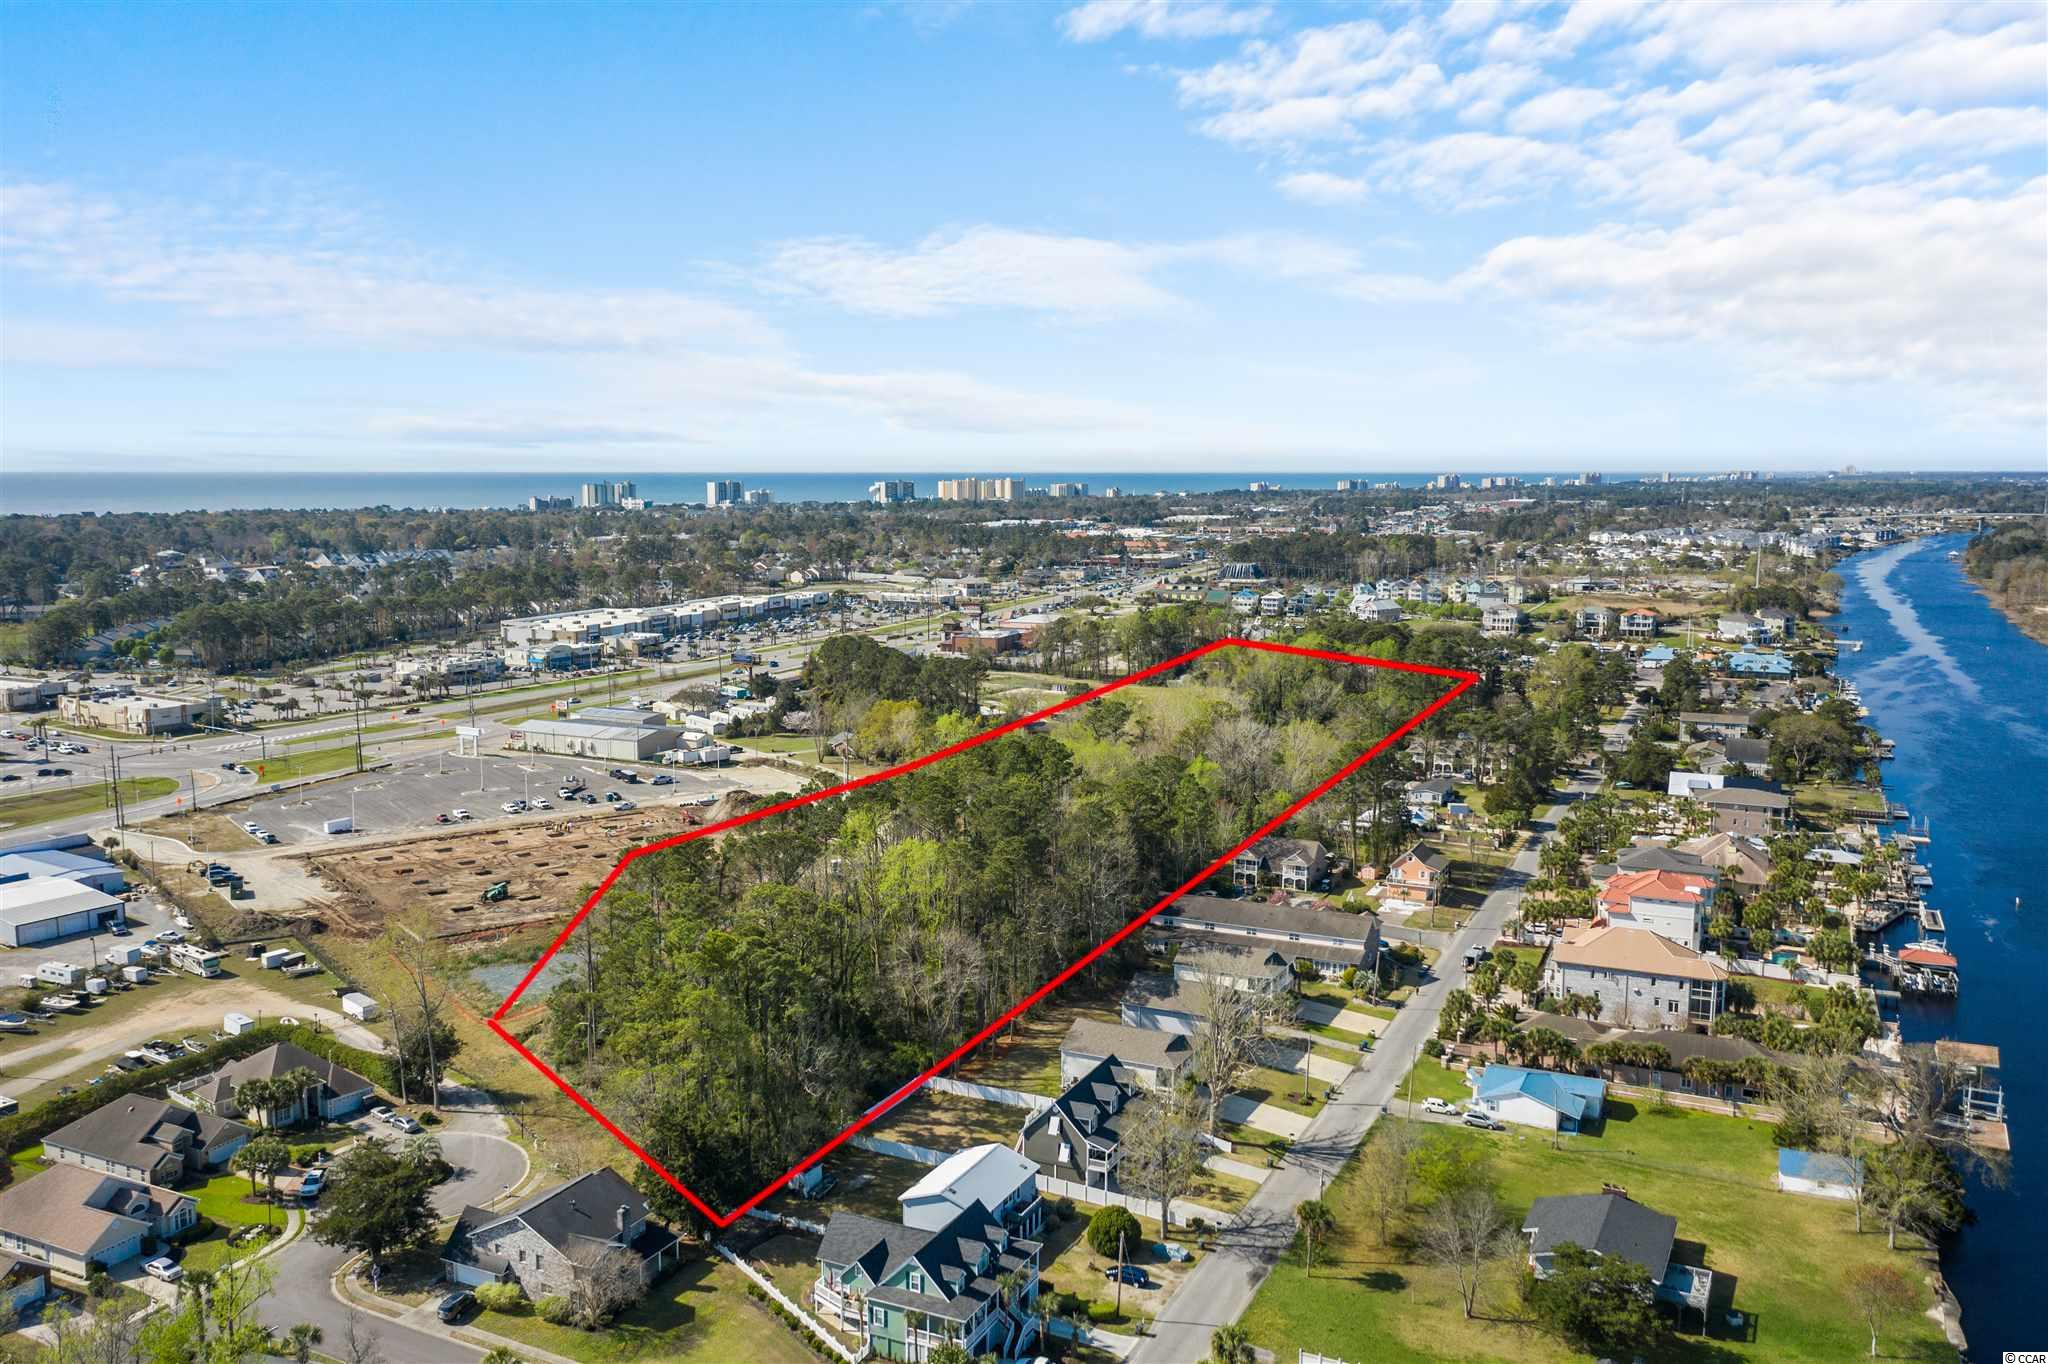 Extremely rare opportunity.....5.12 acres of prime development land ready to be developed.  This unique tract is centrally located in the heart of NMB, just a stone's throw from the Intracoastal Waterway and a golf cart ride to the beach.  This is the spot for the next upscale, quaint neighborhood in North Myrtle Beach.